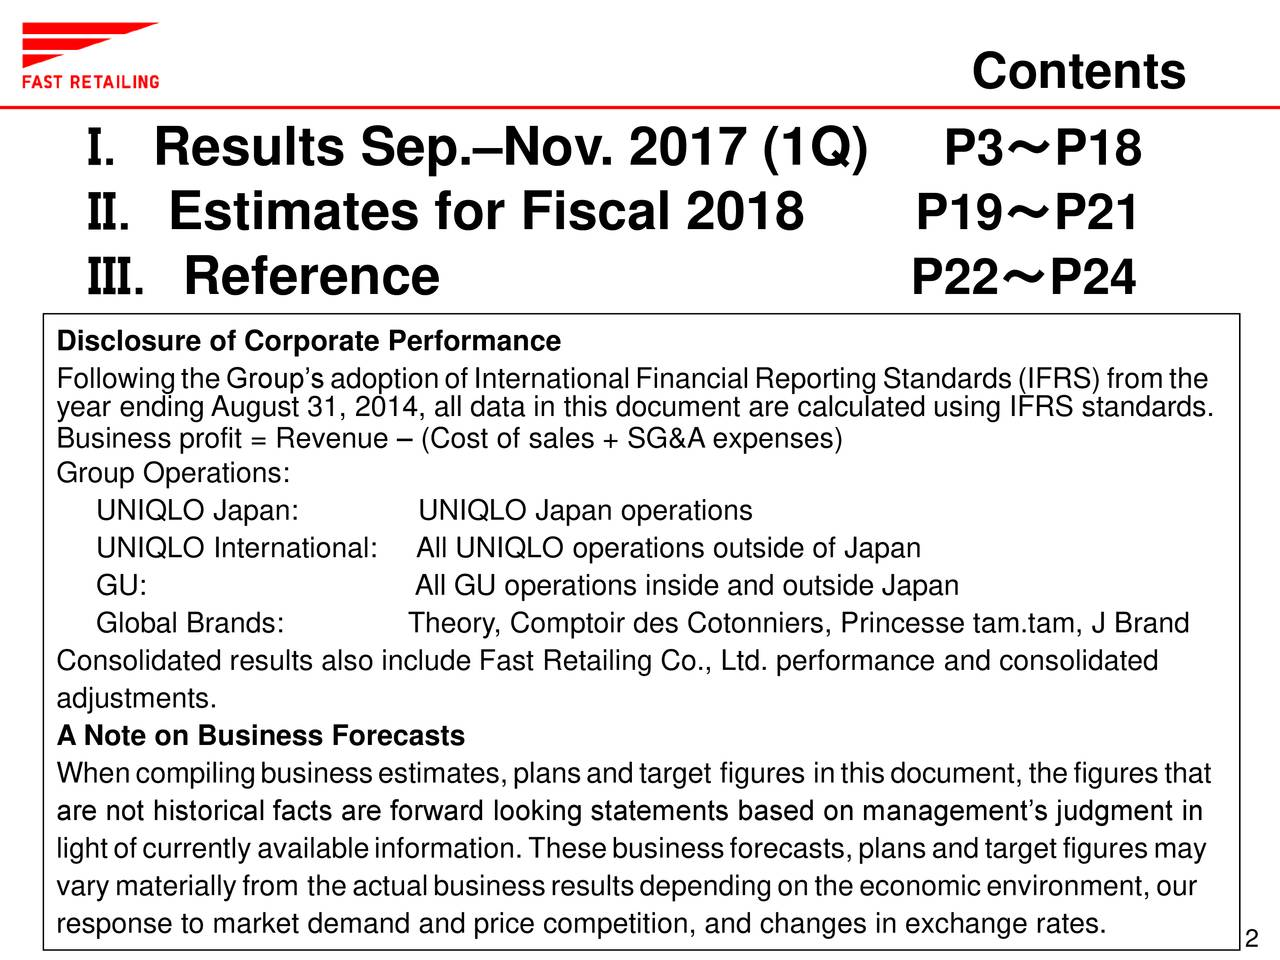 I. Results Sep.–Nov. 2017 (1Q) P3~P18 II. Estimates for Fiscal 2018 P19~P21 III. Reference P22~P24 Disclosure of Corporate Performance Followingthe Group's adoption of International FinancialReporting Standards (IFRS) from the year ending August 31, 2014, all data in this document are calculated using IFRS standards. Business profit = Revenue – (Cost of sales + SG&A expenses) Group Operations: UNIQLO Japan: UNIQLO Japan operations UNIQLO InternationalAll UNIQLO operations outside of Japan GU: All GU operations inside and outside Japan Global Brands: Theory, Comptoir des Cotonniers, Princesse tam.tam, J Brand Consolidated results also include Fast Retailing Co., Ltd. performance and consolidated adjustments. A Note on Business Forecasts When compilingbusinessestimates, plansandtarget figures inthisdocument, the figures that are not historical facts are forward looking statements based on management's judgment in lightof currently availableinformation. Thesebusinessforecasts, plansand target figures may vary materially from the actualbusinessresultsdependingon the economicenvironment, our response to market demand and price competition, and changes in exchange rates.